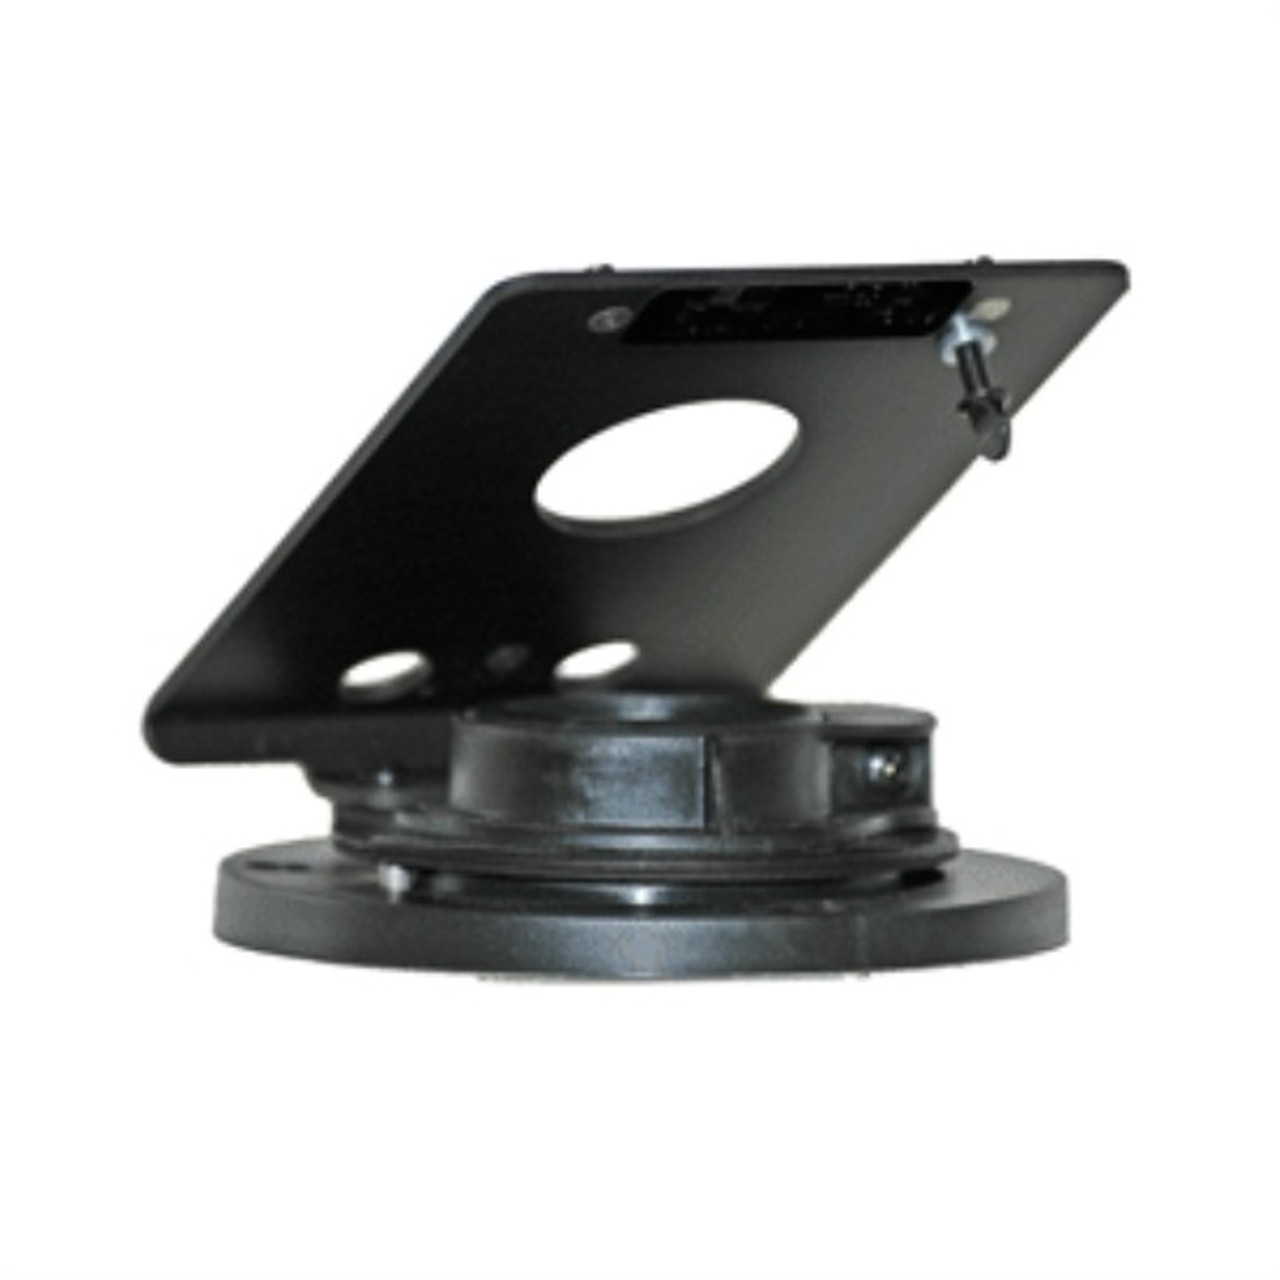 Verifone MX850 Credit Card Stand Fixed Angle Open Hole by Swivel Stands